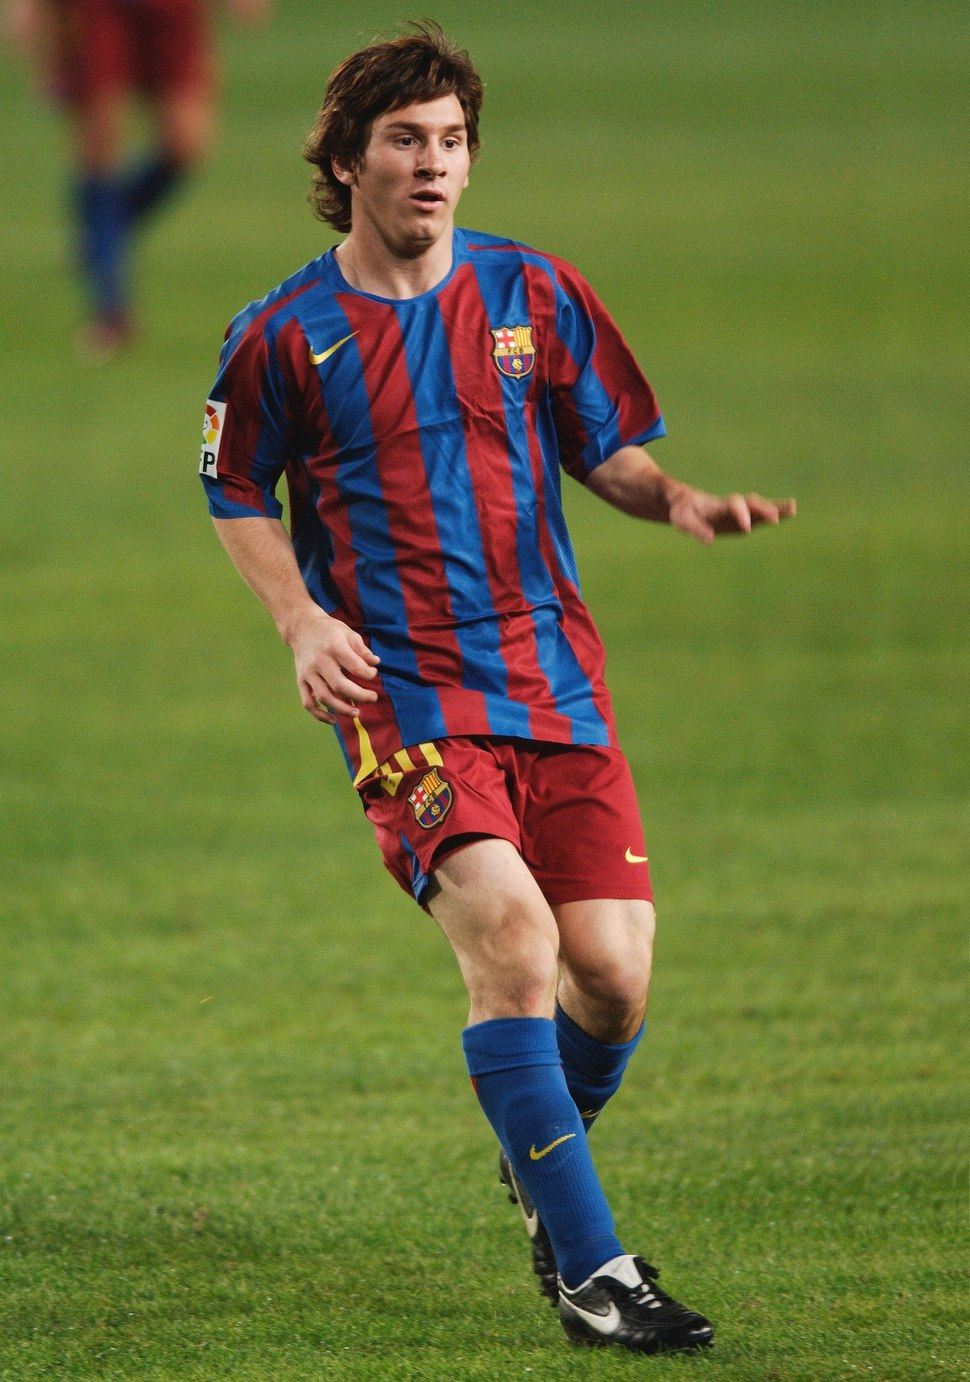 Leo messi barce 2005